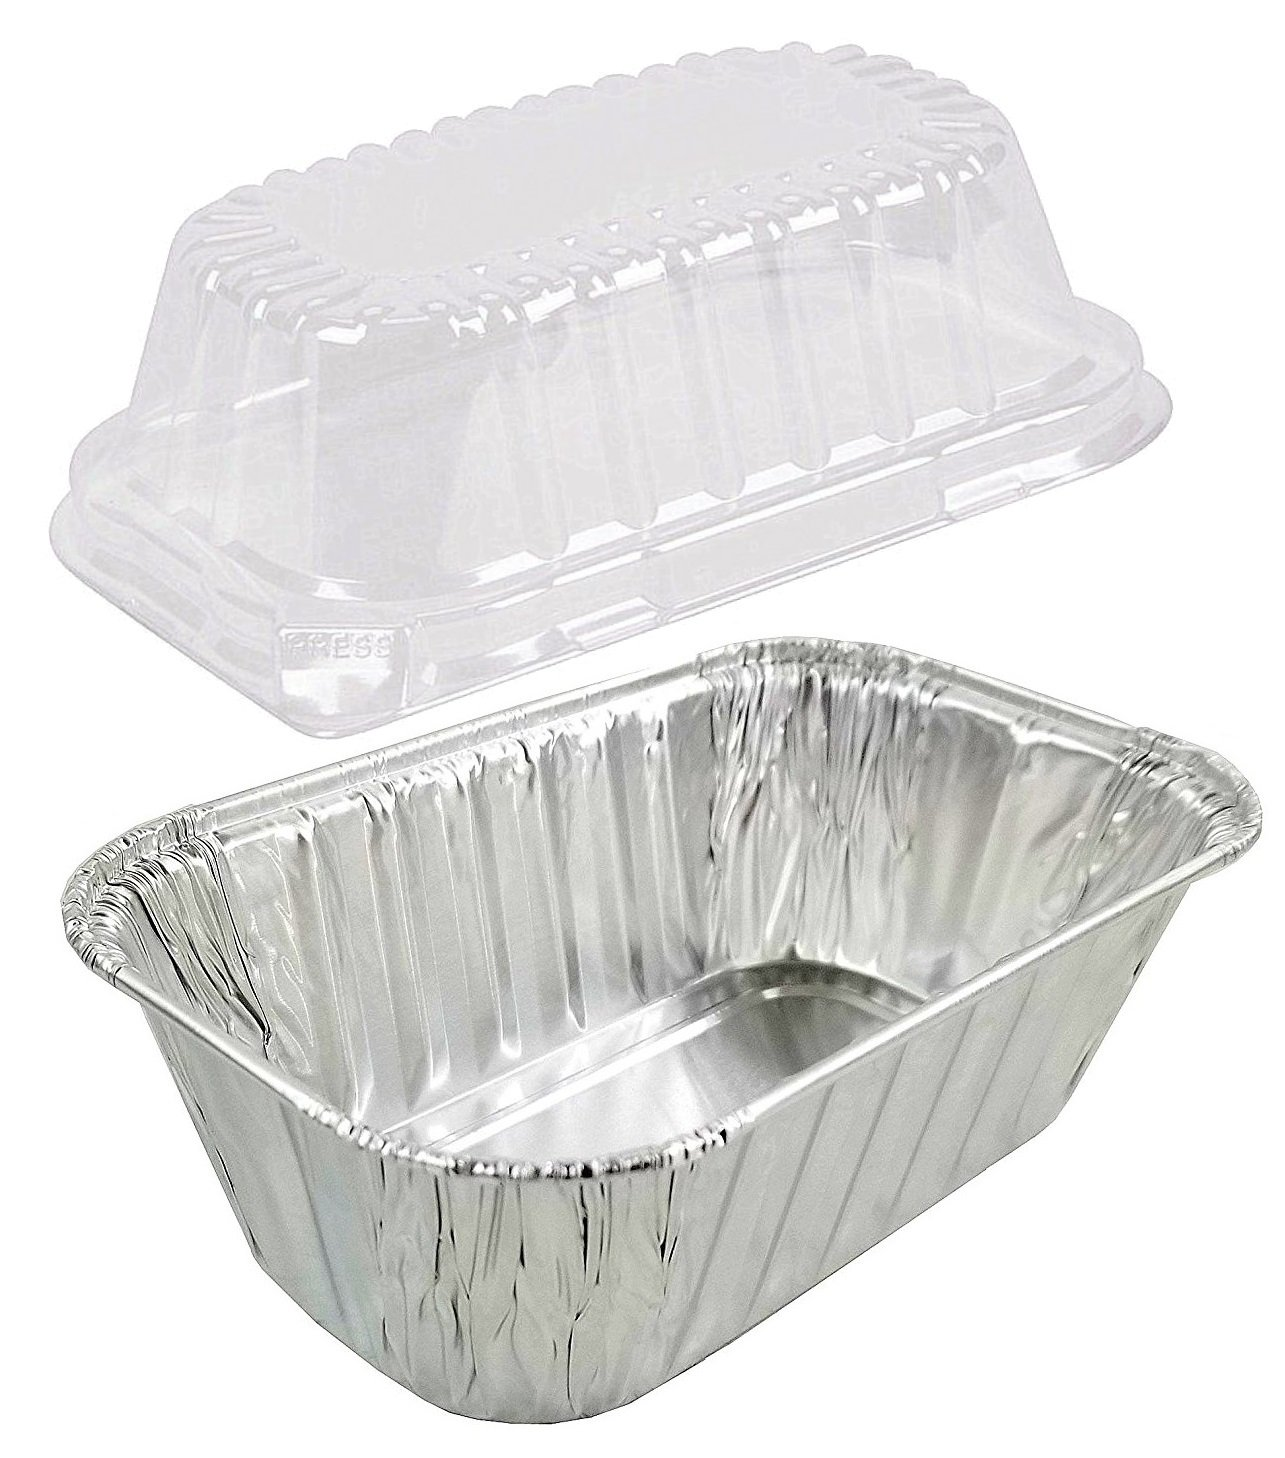 Pactogo Disposable 1 lb. Aluminum Foil Mini Loaf Pans with Clear Dome Lids (Pack of 100 Sets) by PACTOGO (Image #3)